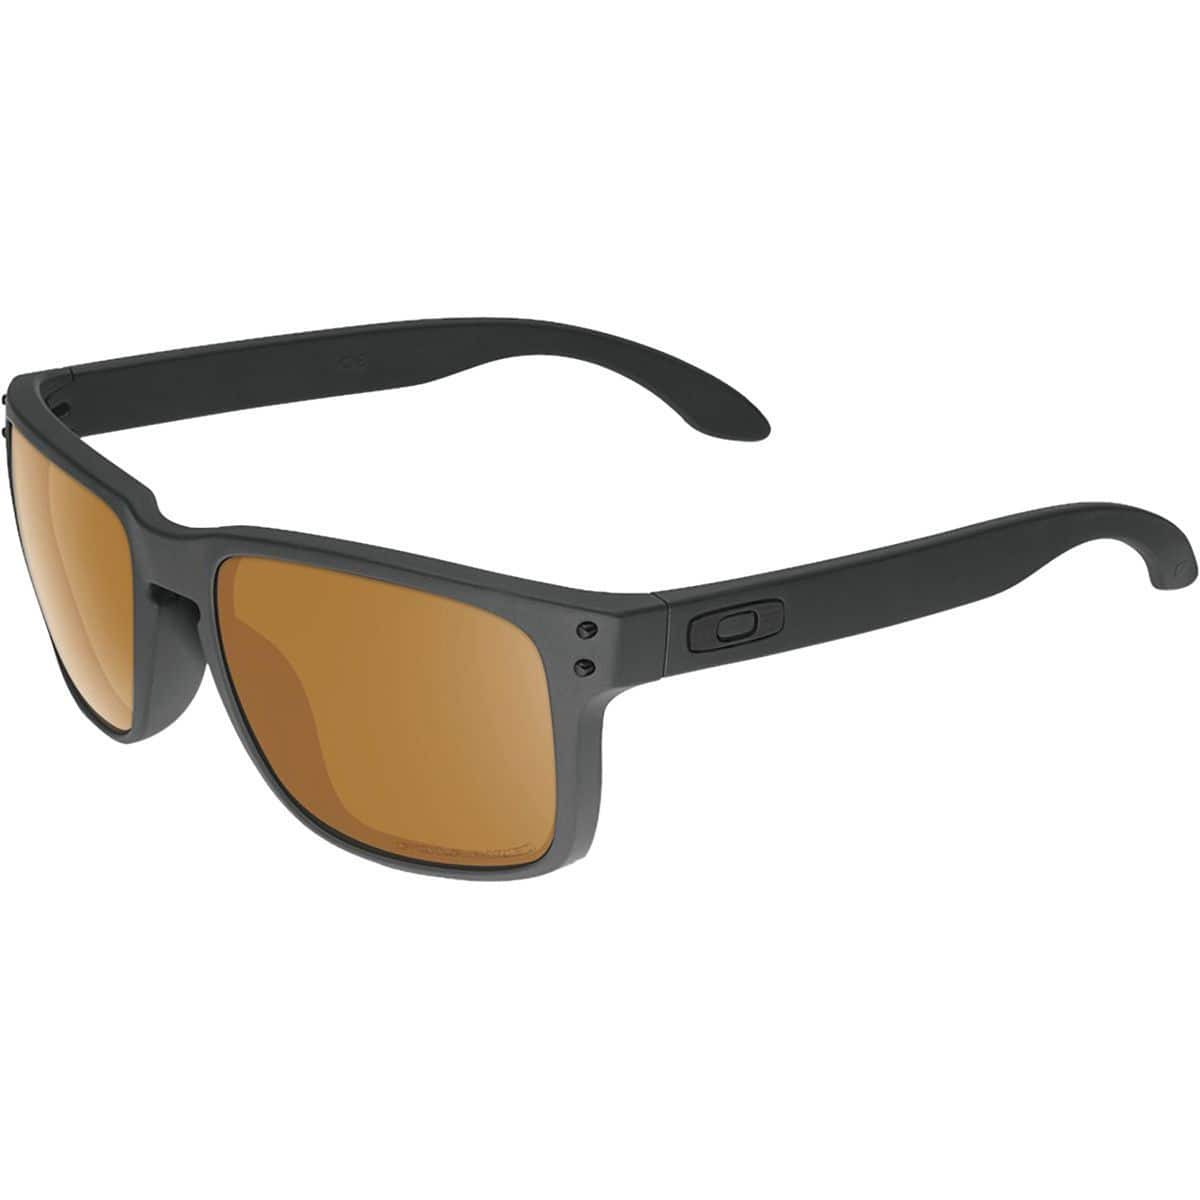 c85500f362 Oakley Holbrook Bronze Polarized Sunglasses (Matte Black ...